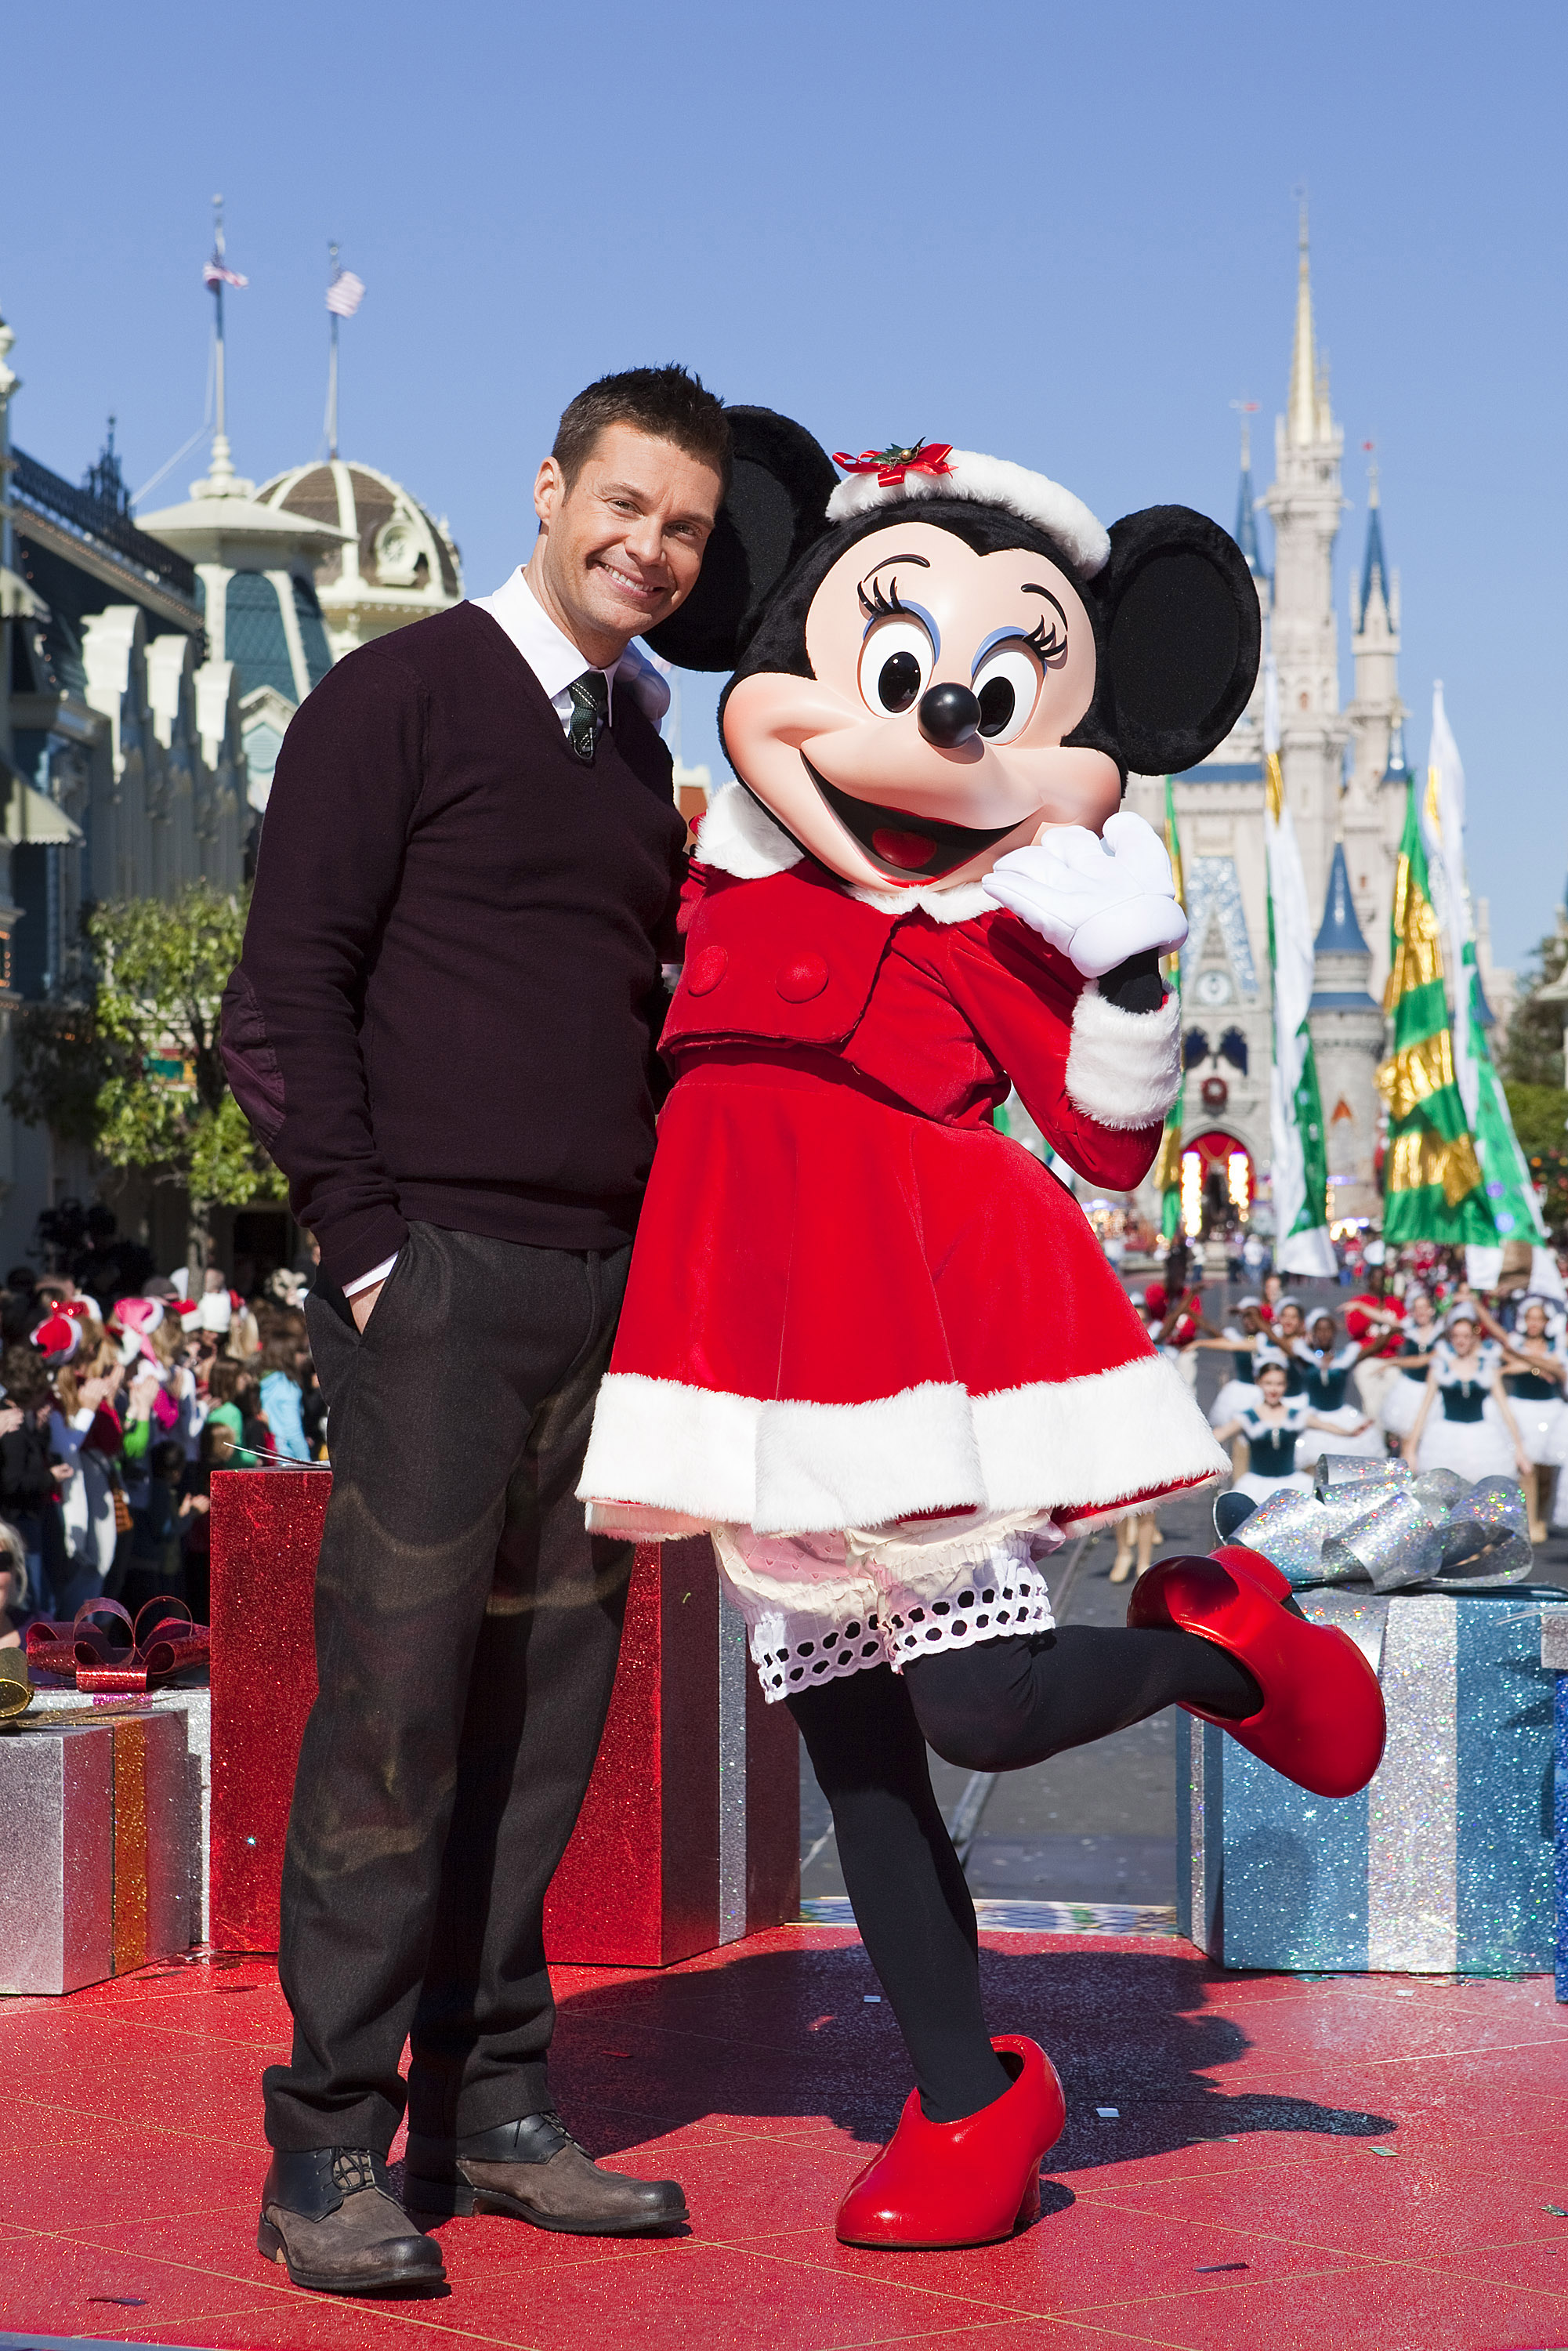 Ryan Seacrest and Minnie Mouse at the Magic Kingdom